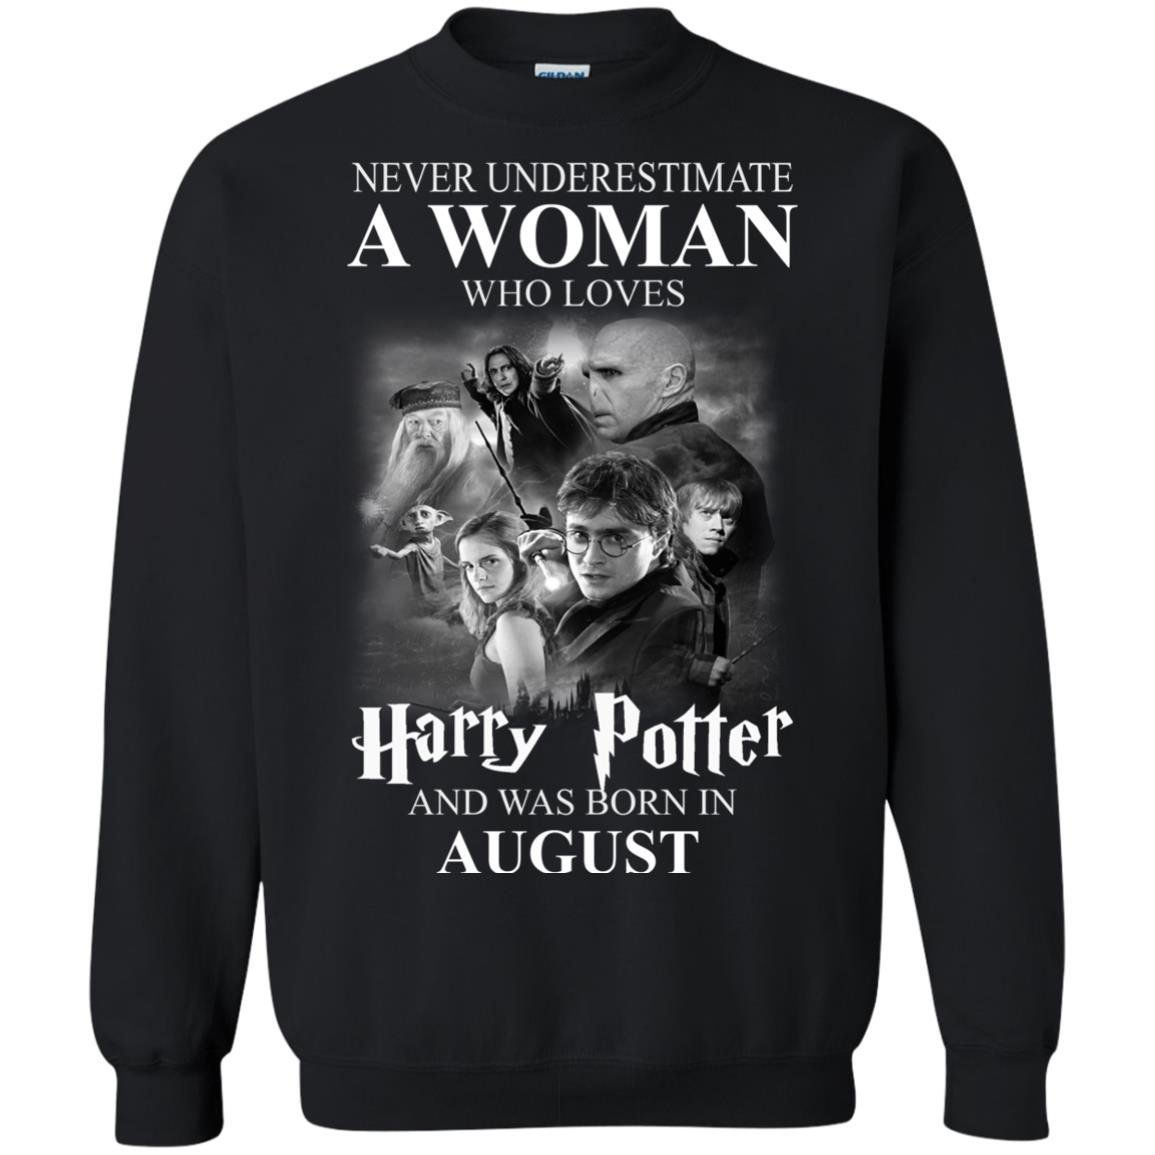 image 1080 - Never underestimate A woman who watches Harry Potter and was born in August shirt